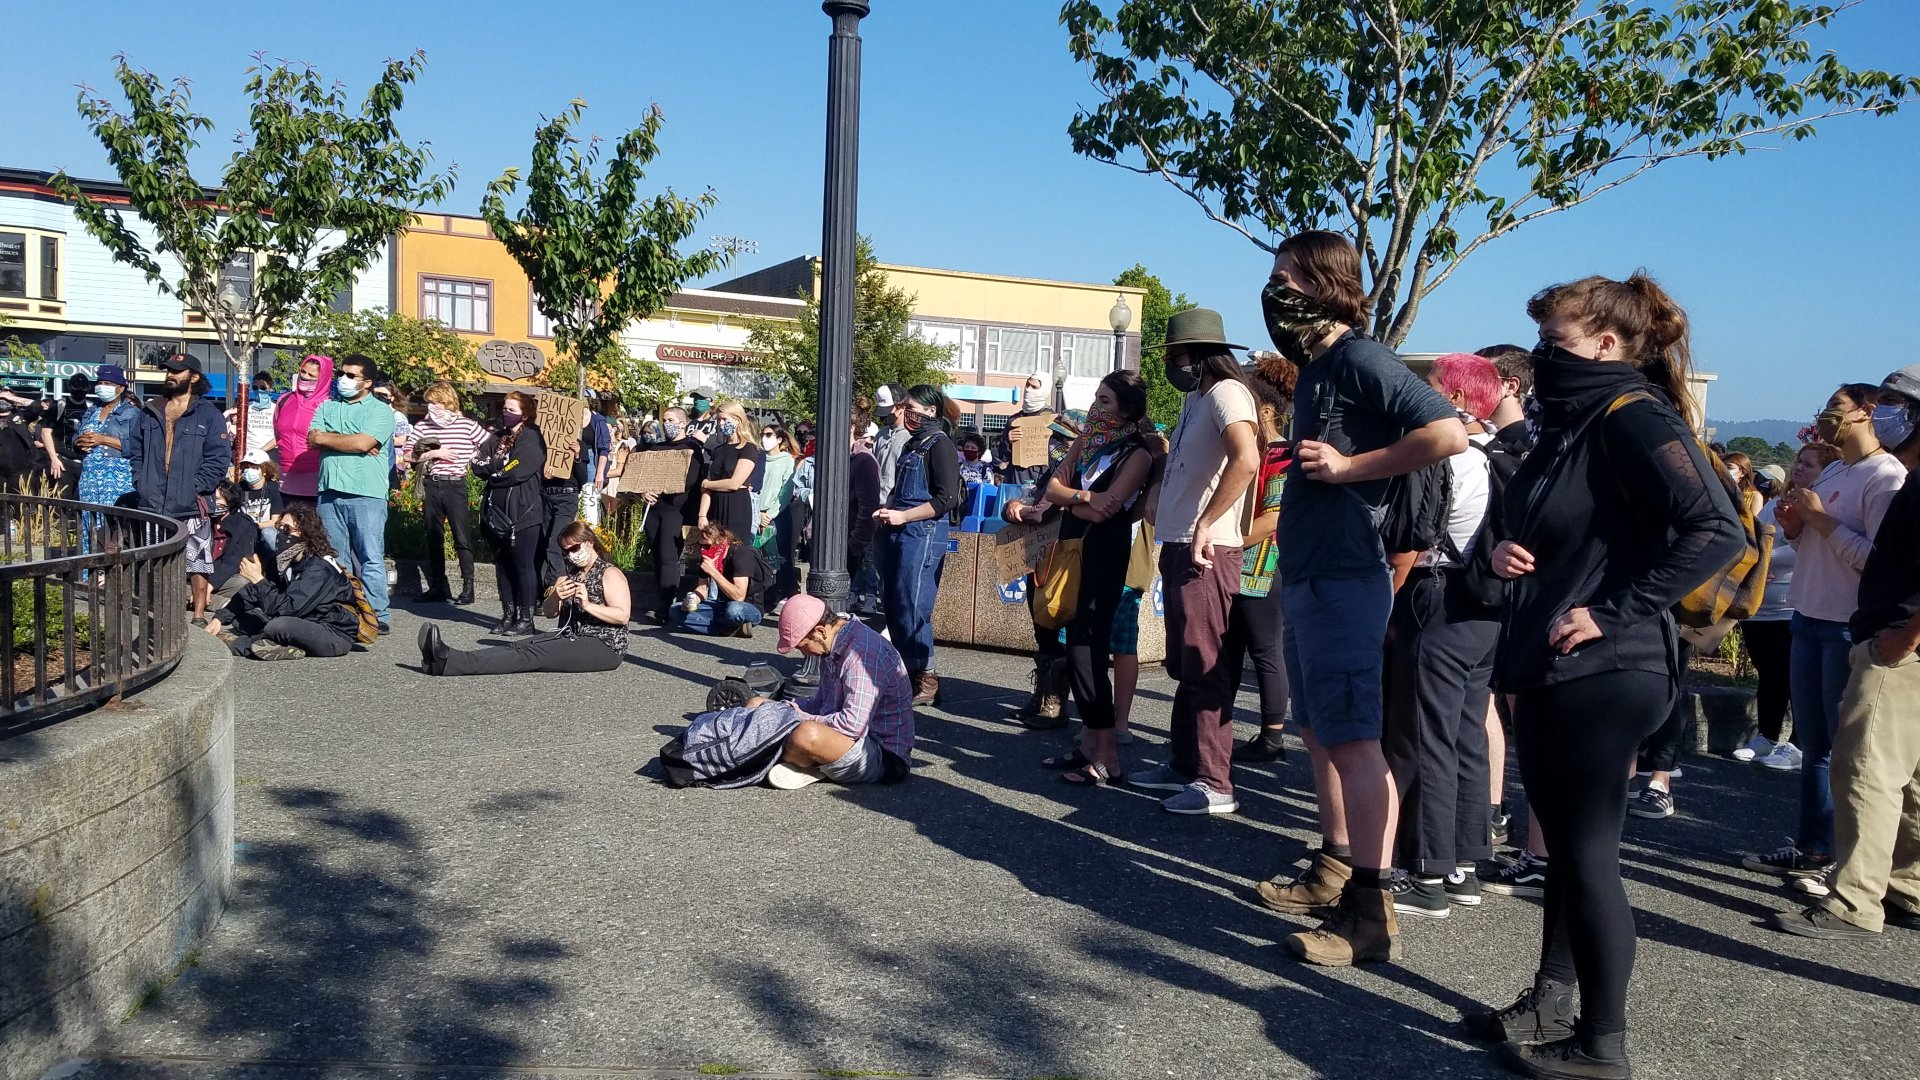 Protesters gather in the Arcata Plaza to speak out against police brutality and racism on June 1 | Photo by Thomas Lal